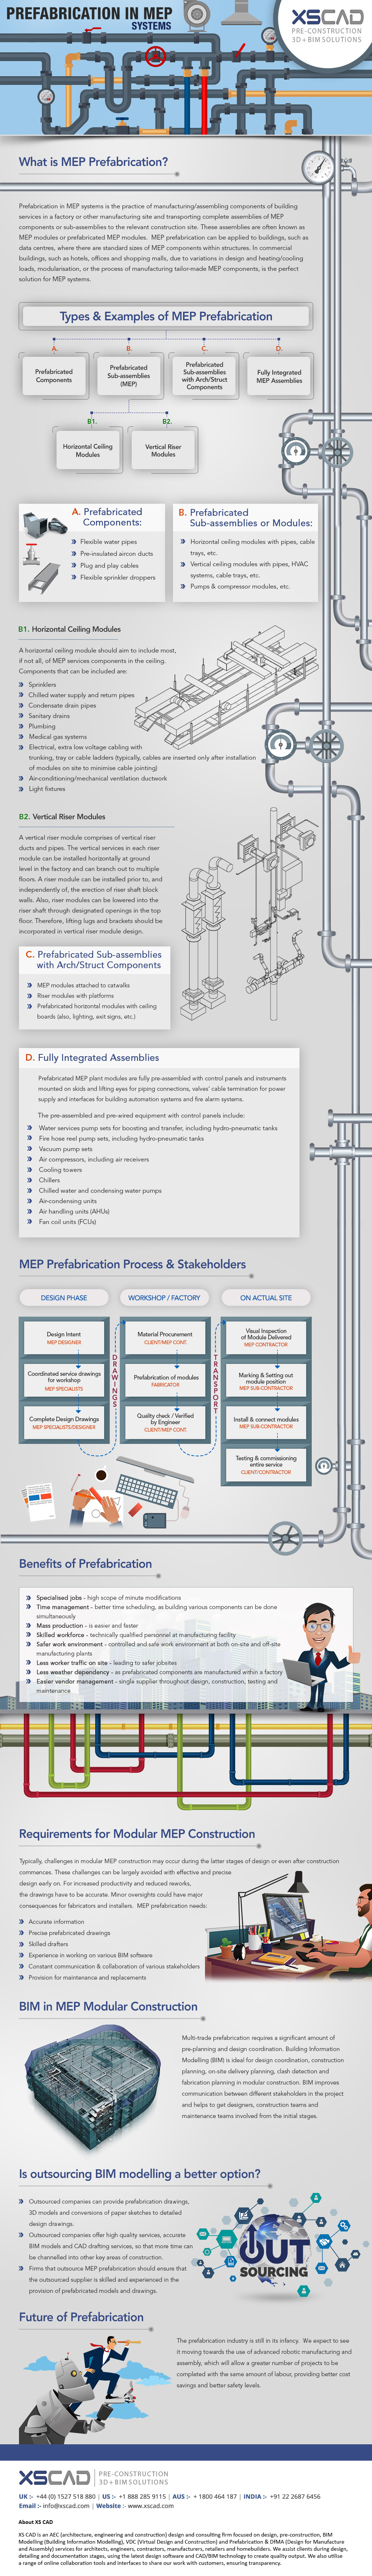 Prefabrication in MEP systems